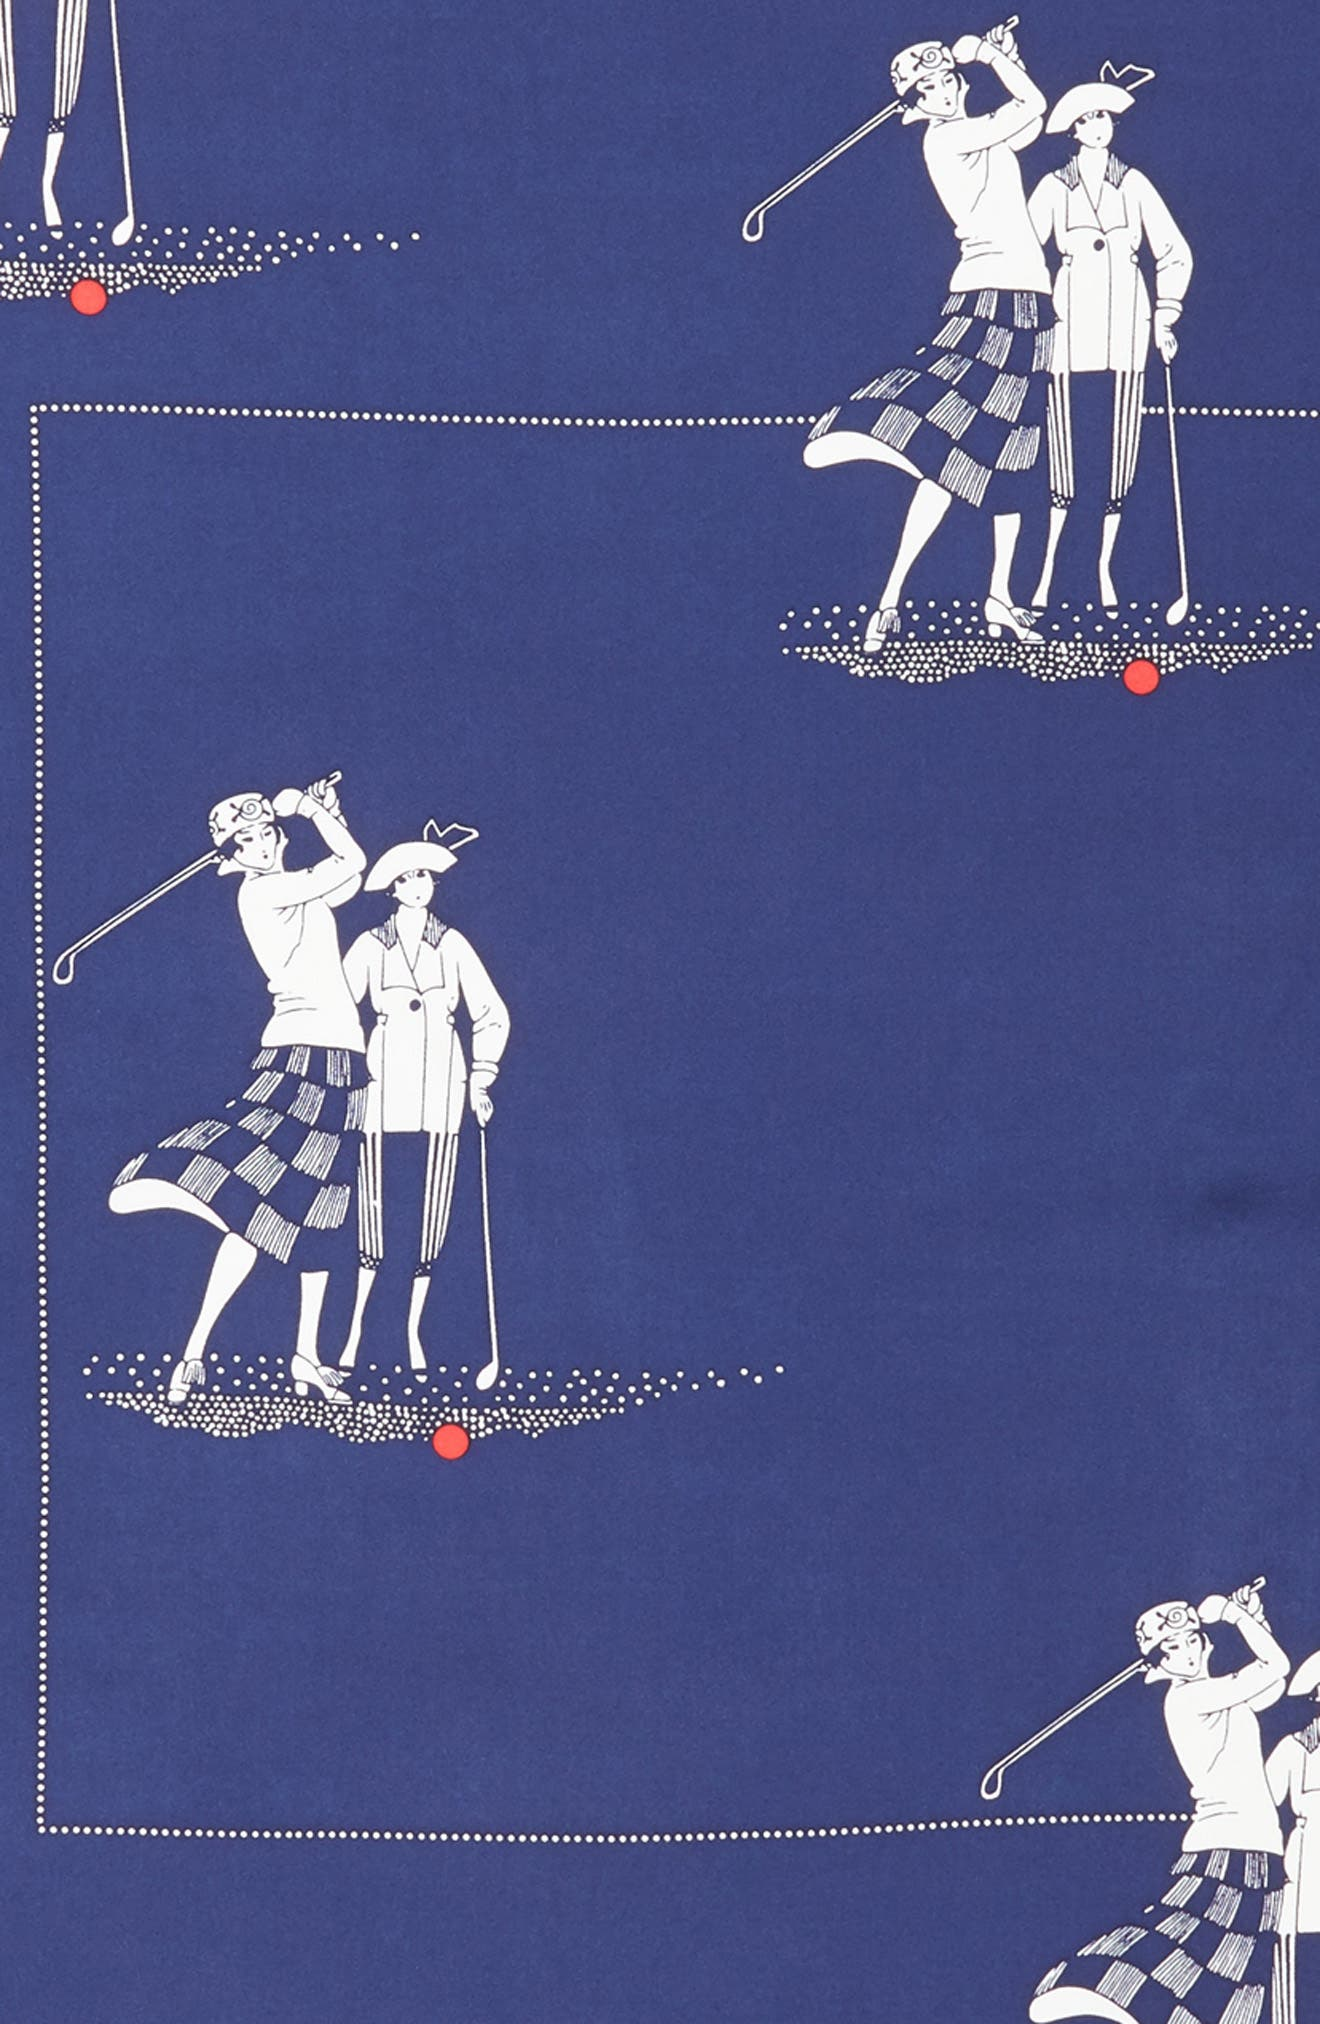 Golf Day Square Silk Scarf,                             Alternate thumbnail 4, color,                             MARITIME NAVY